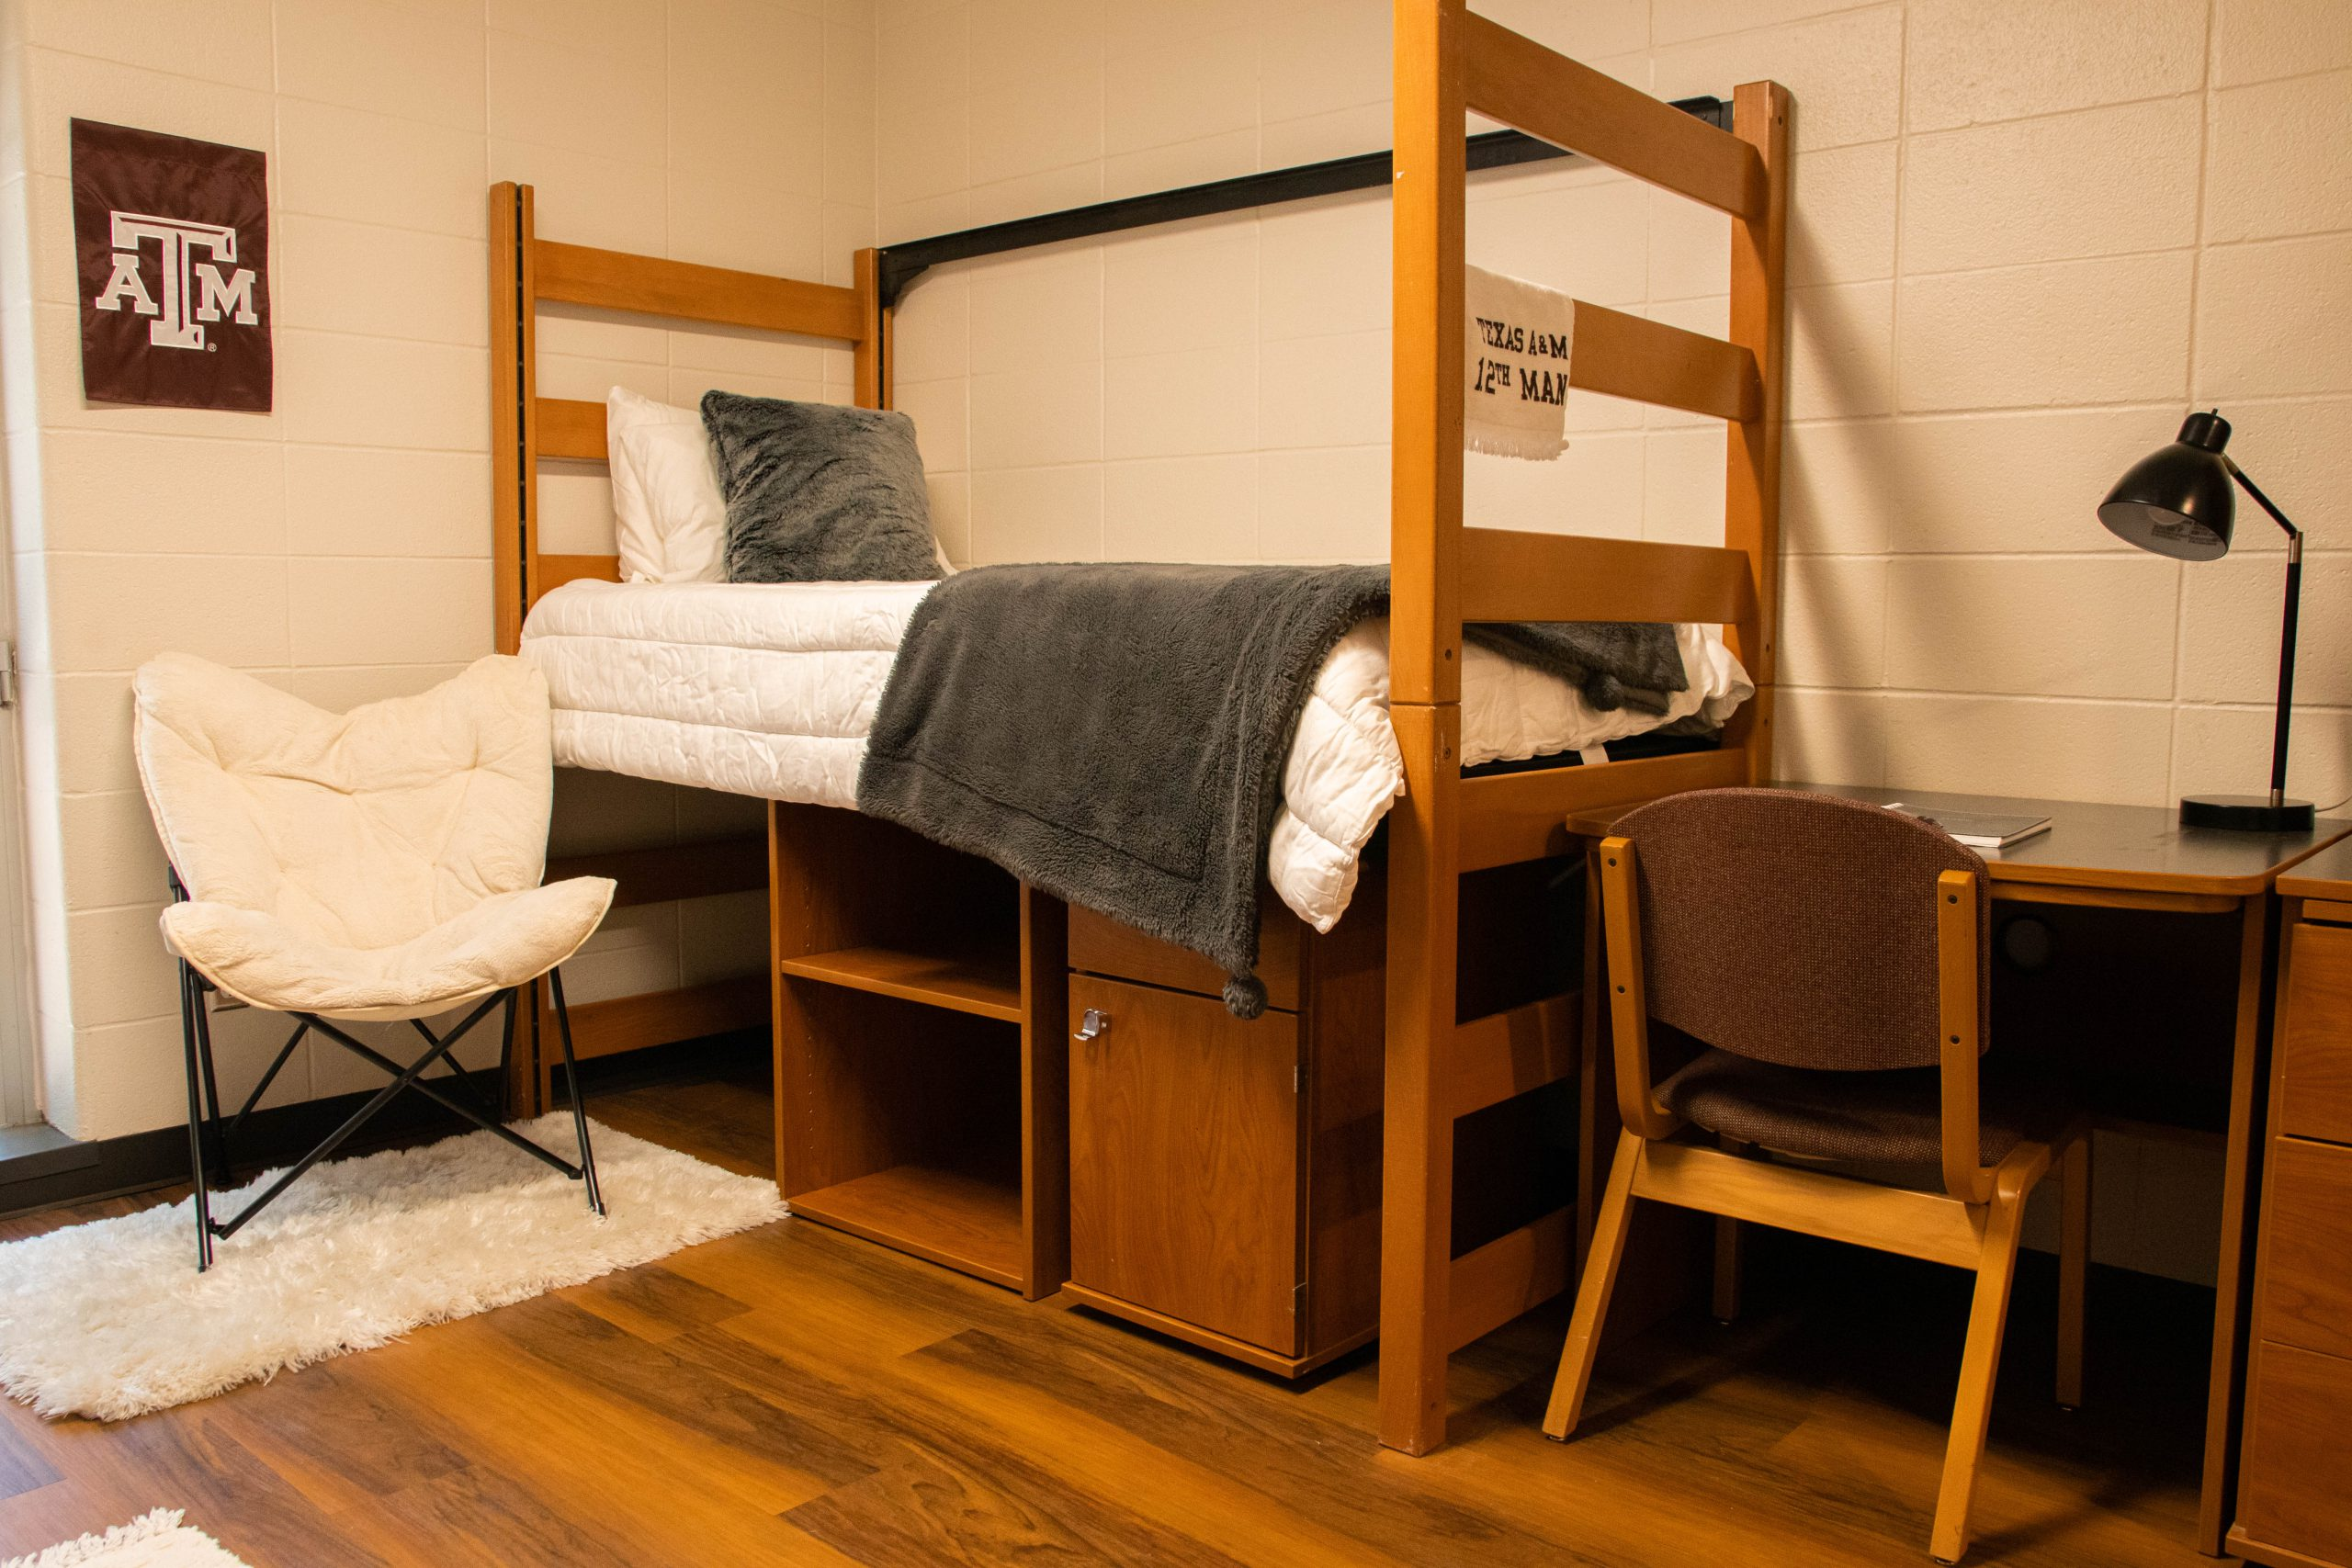 Interior Image of Common Bed